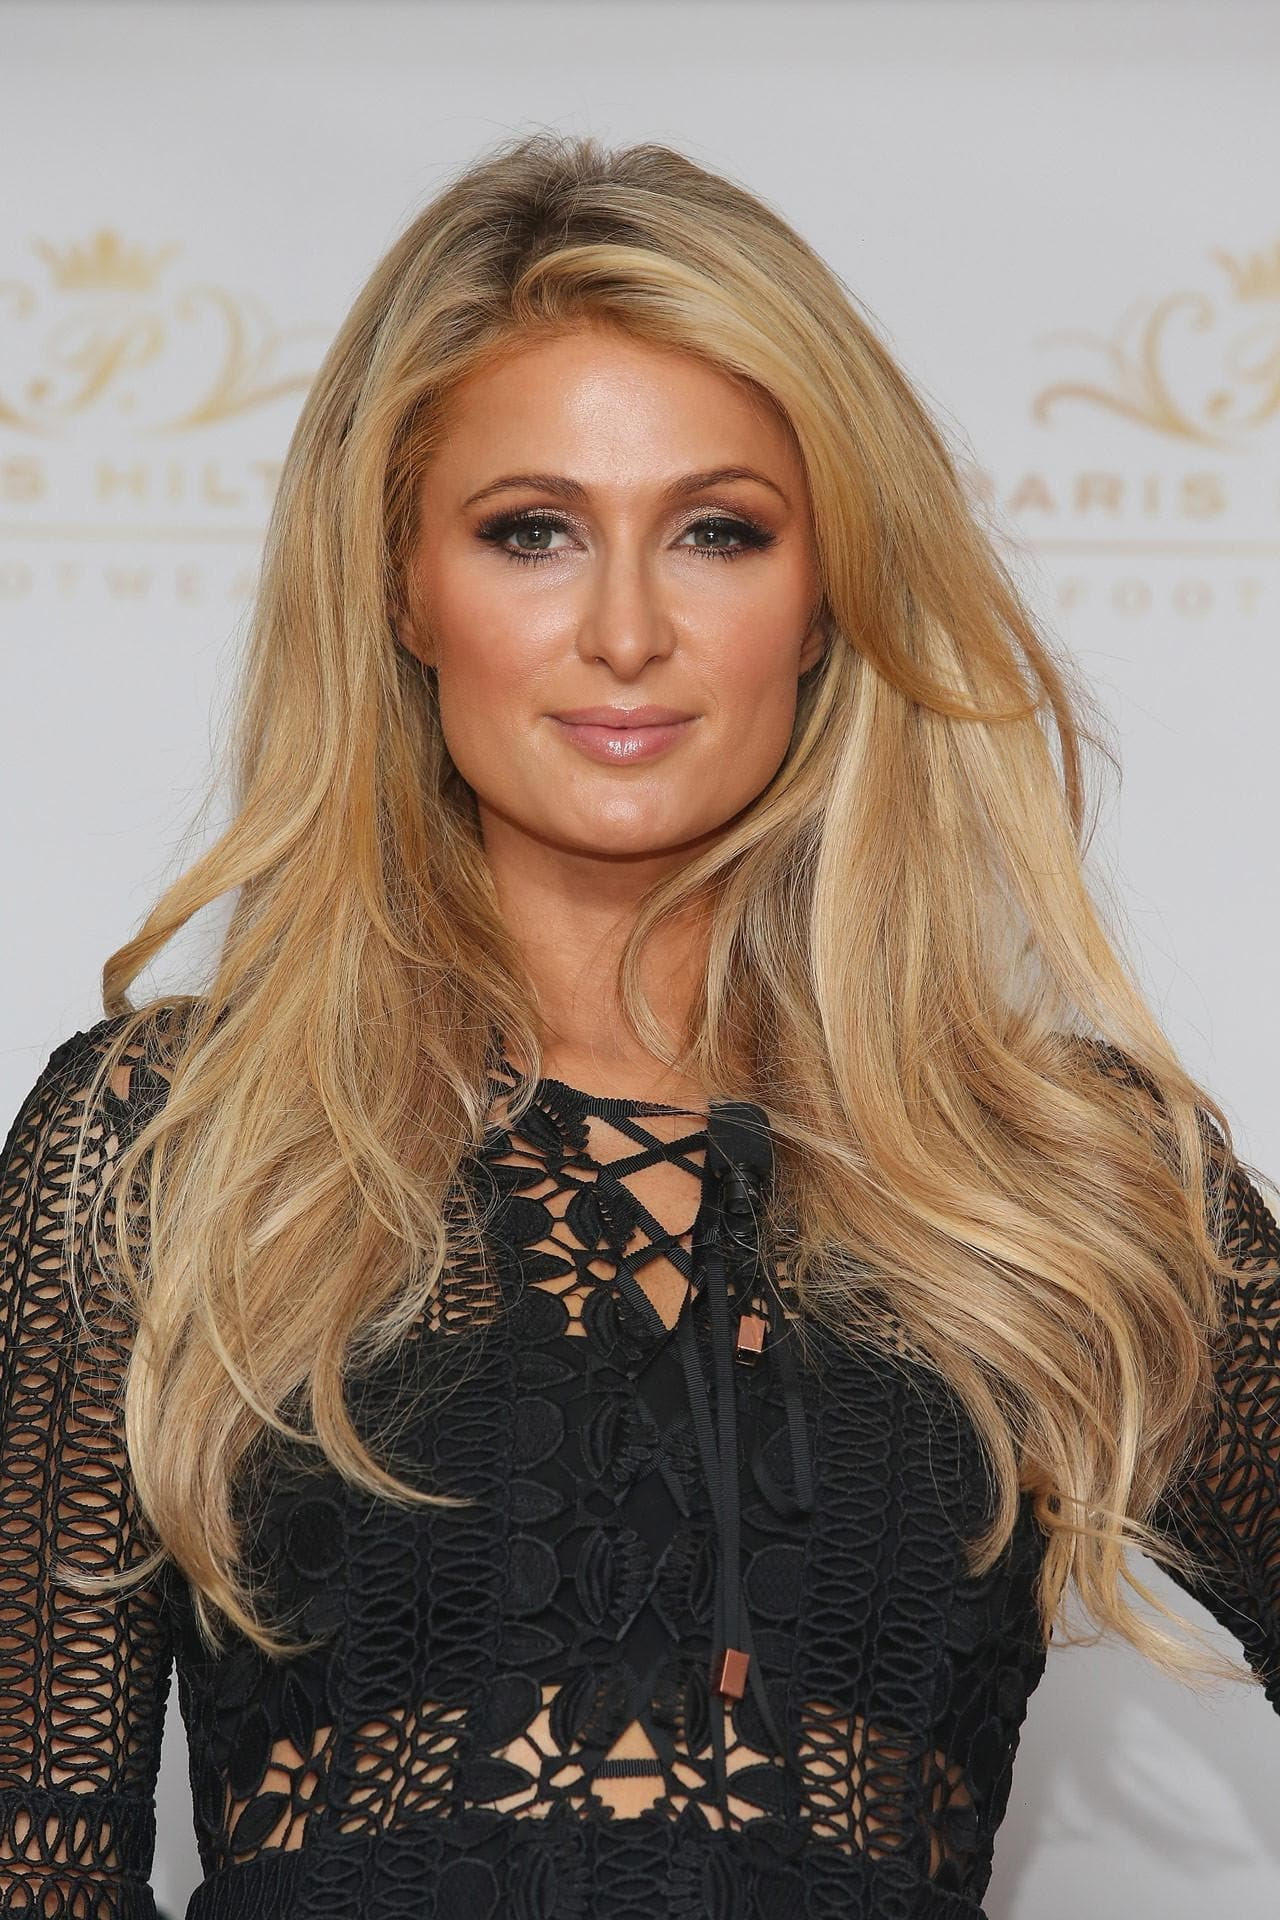 Many people hate Paris Hilton